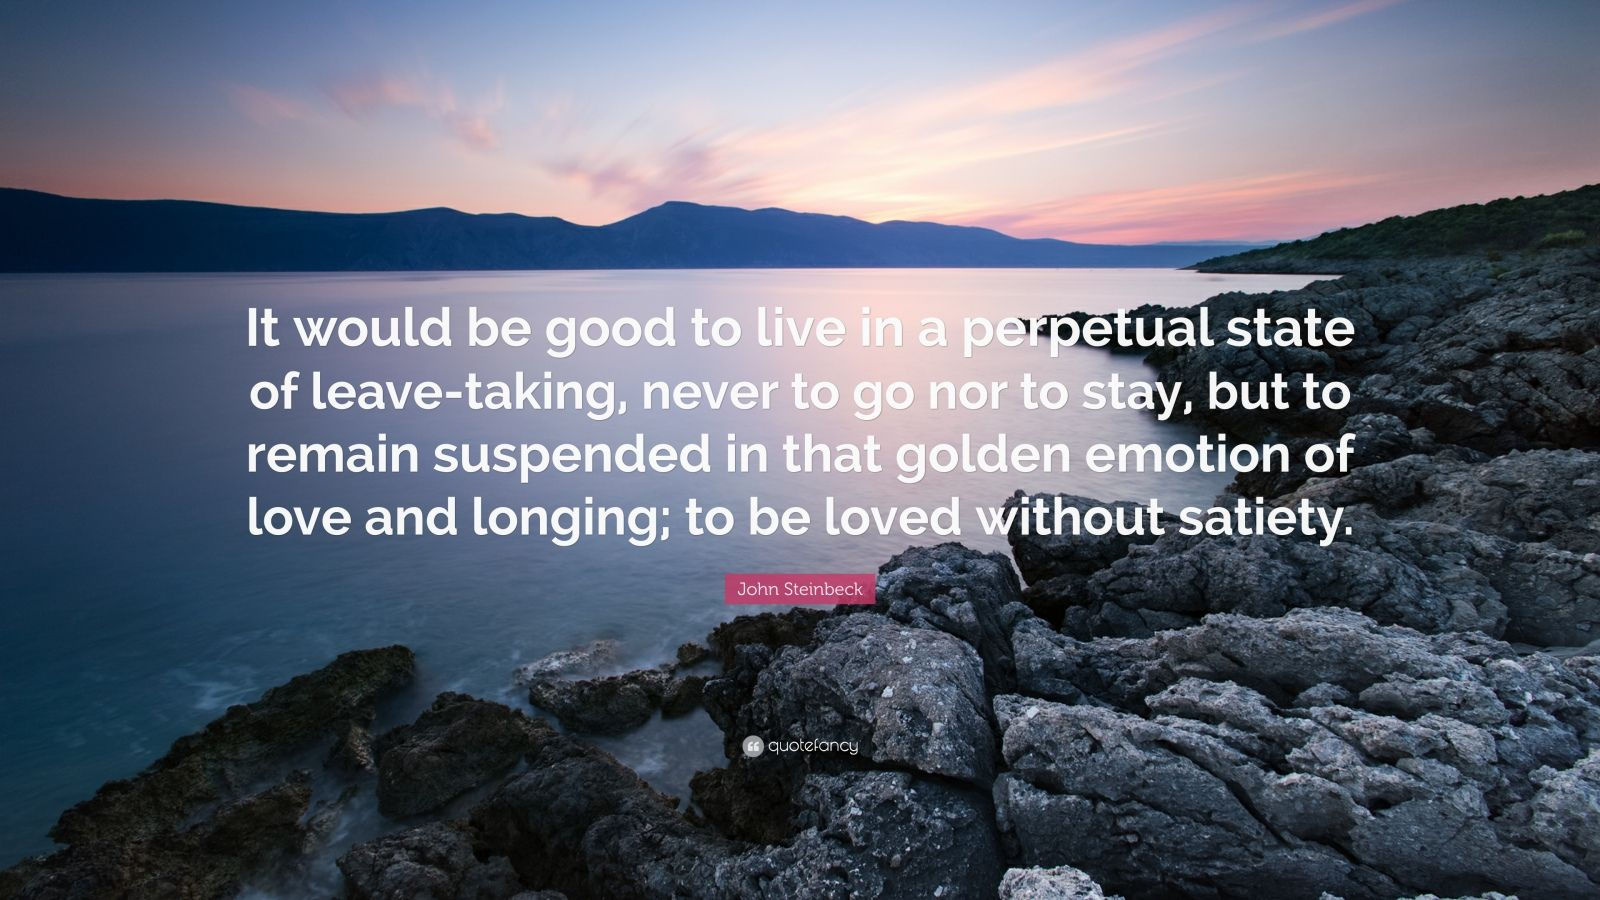 "John Steinbeck Quote: ""It would be good to live in a perpetual state of leave-taking, never to go nor to stay, but to remain suspended in that golden emotion of love and longing; to be loved without satiety."""